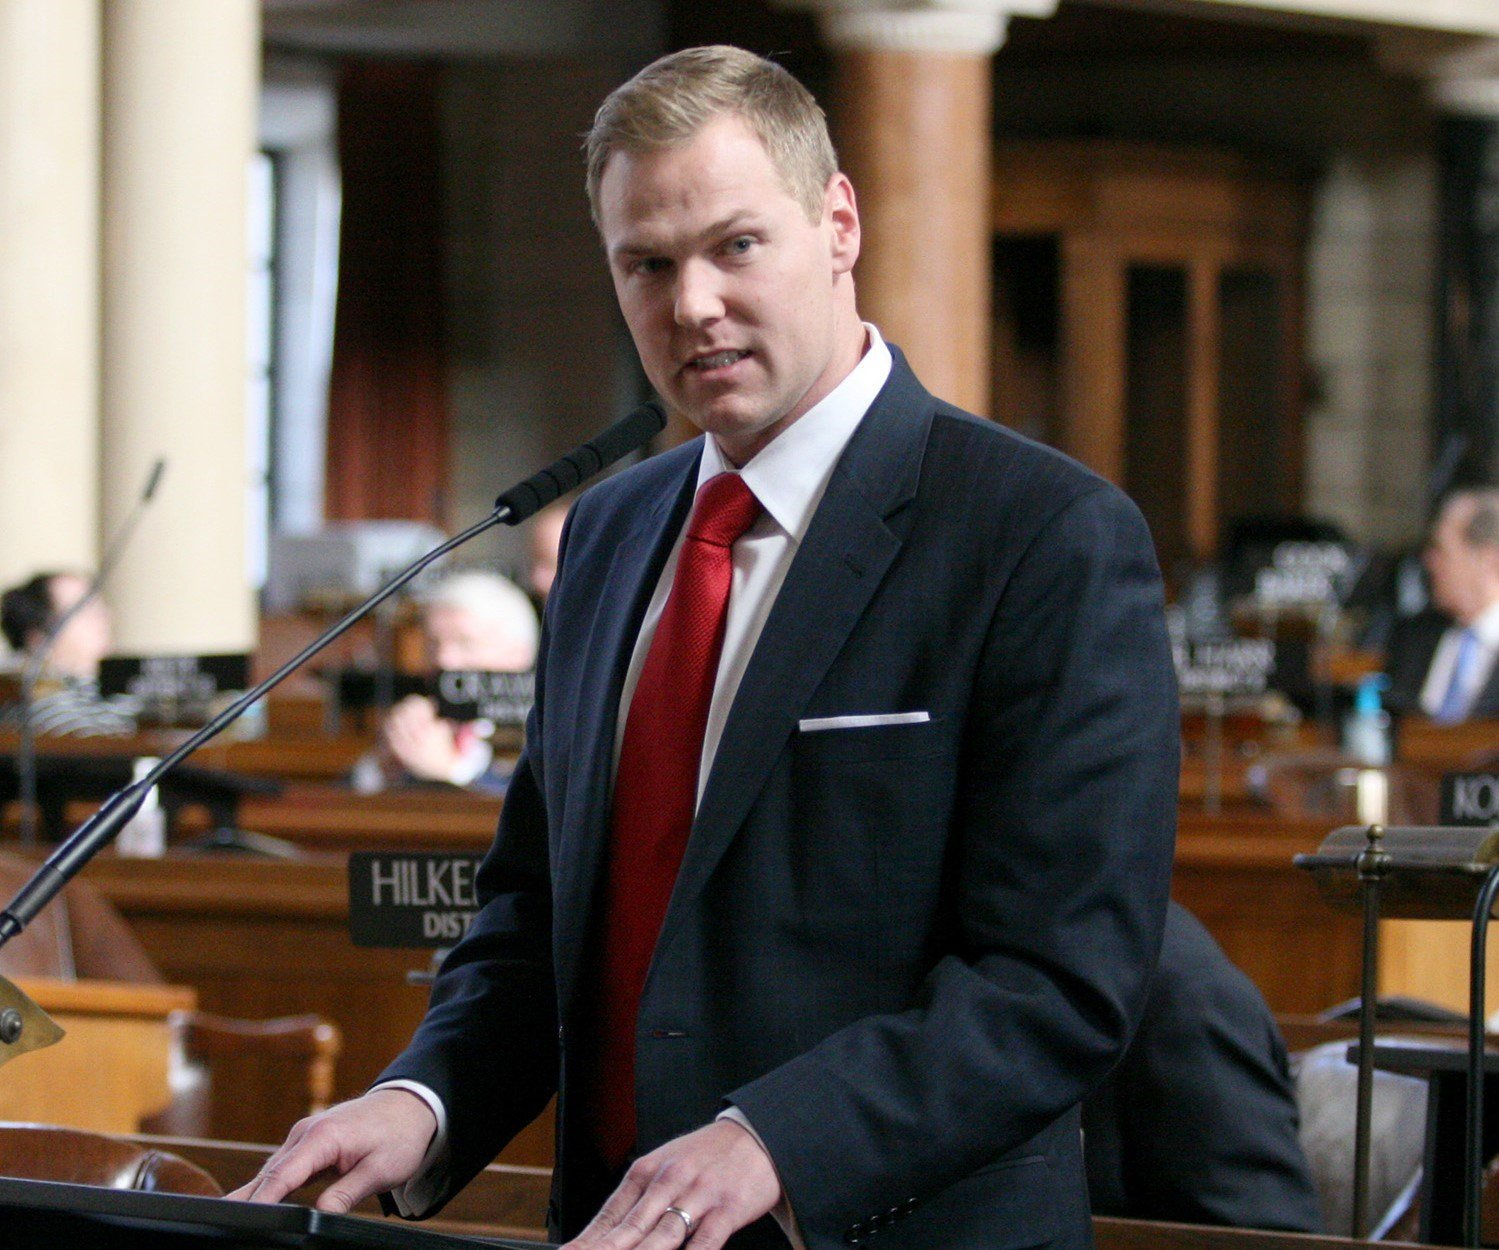 State lawmaker expected to enter governor's race